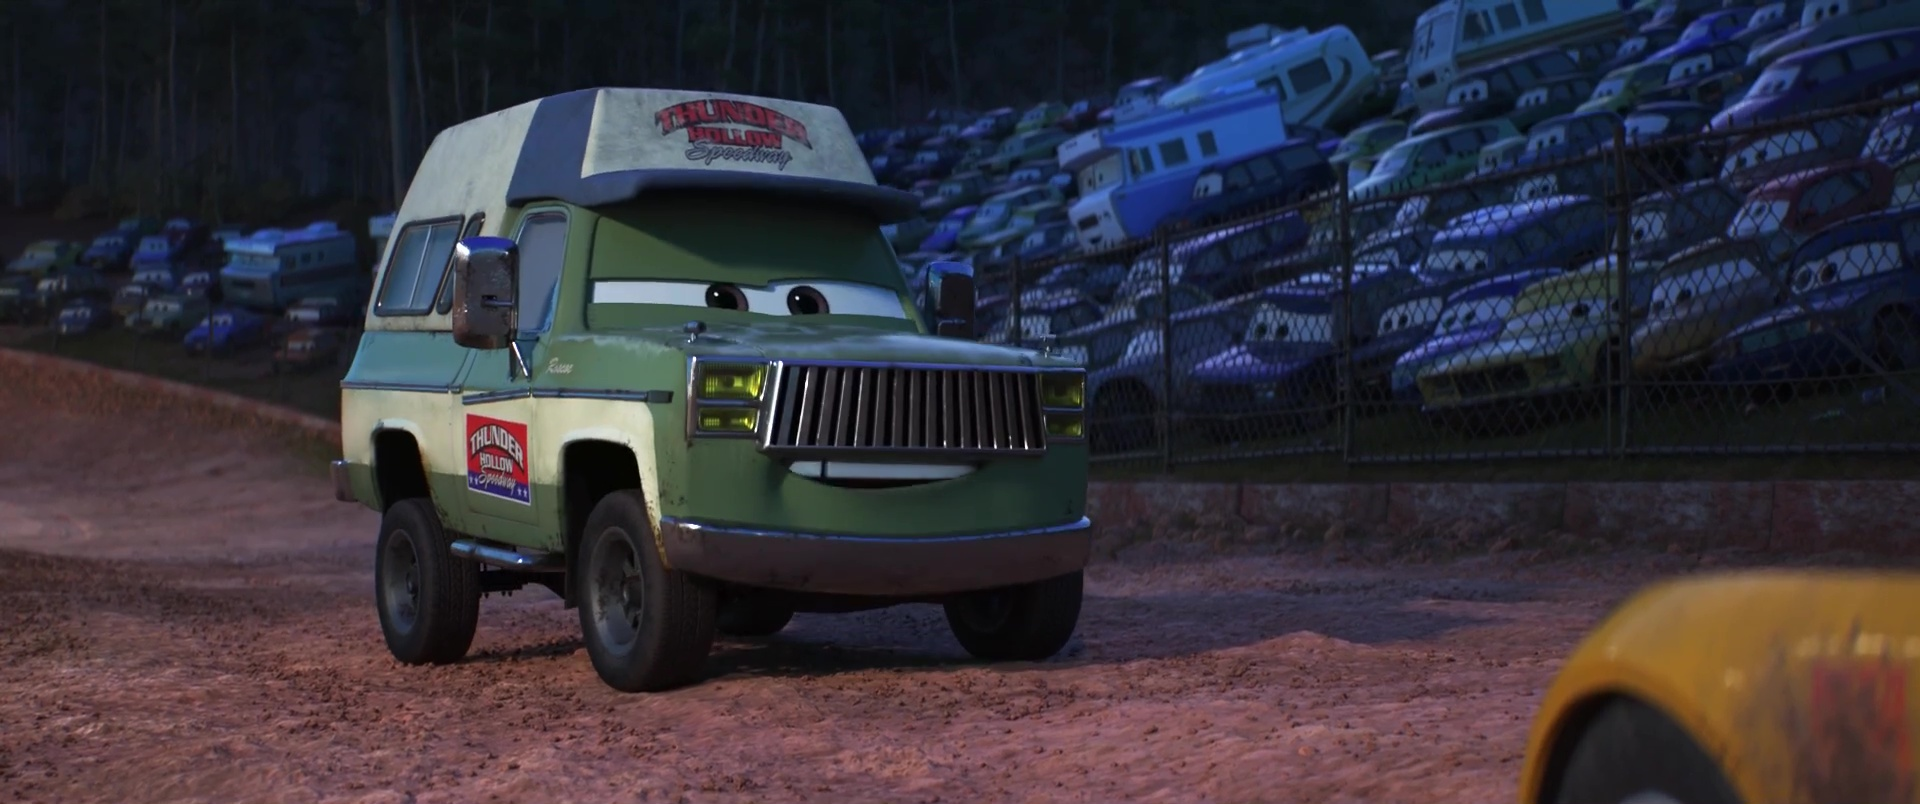 roscoe-personnage-cars-3-01